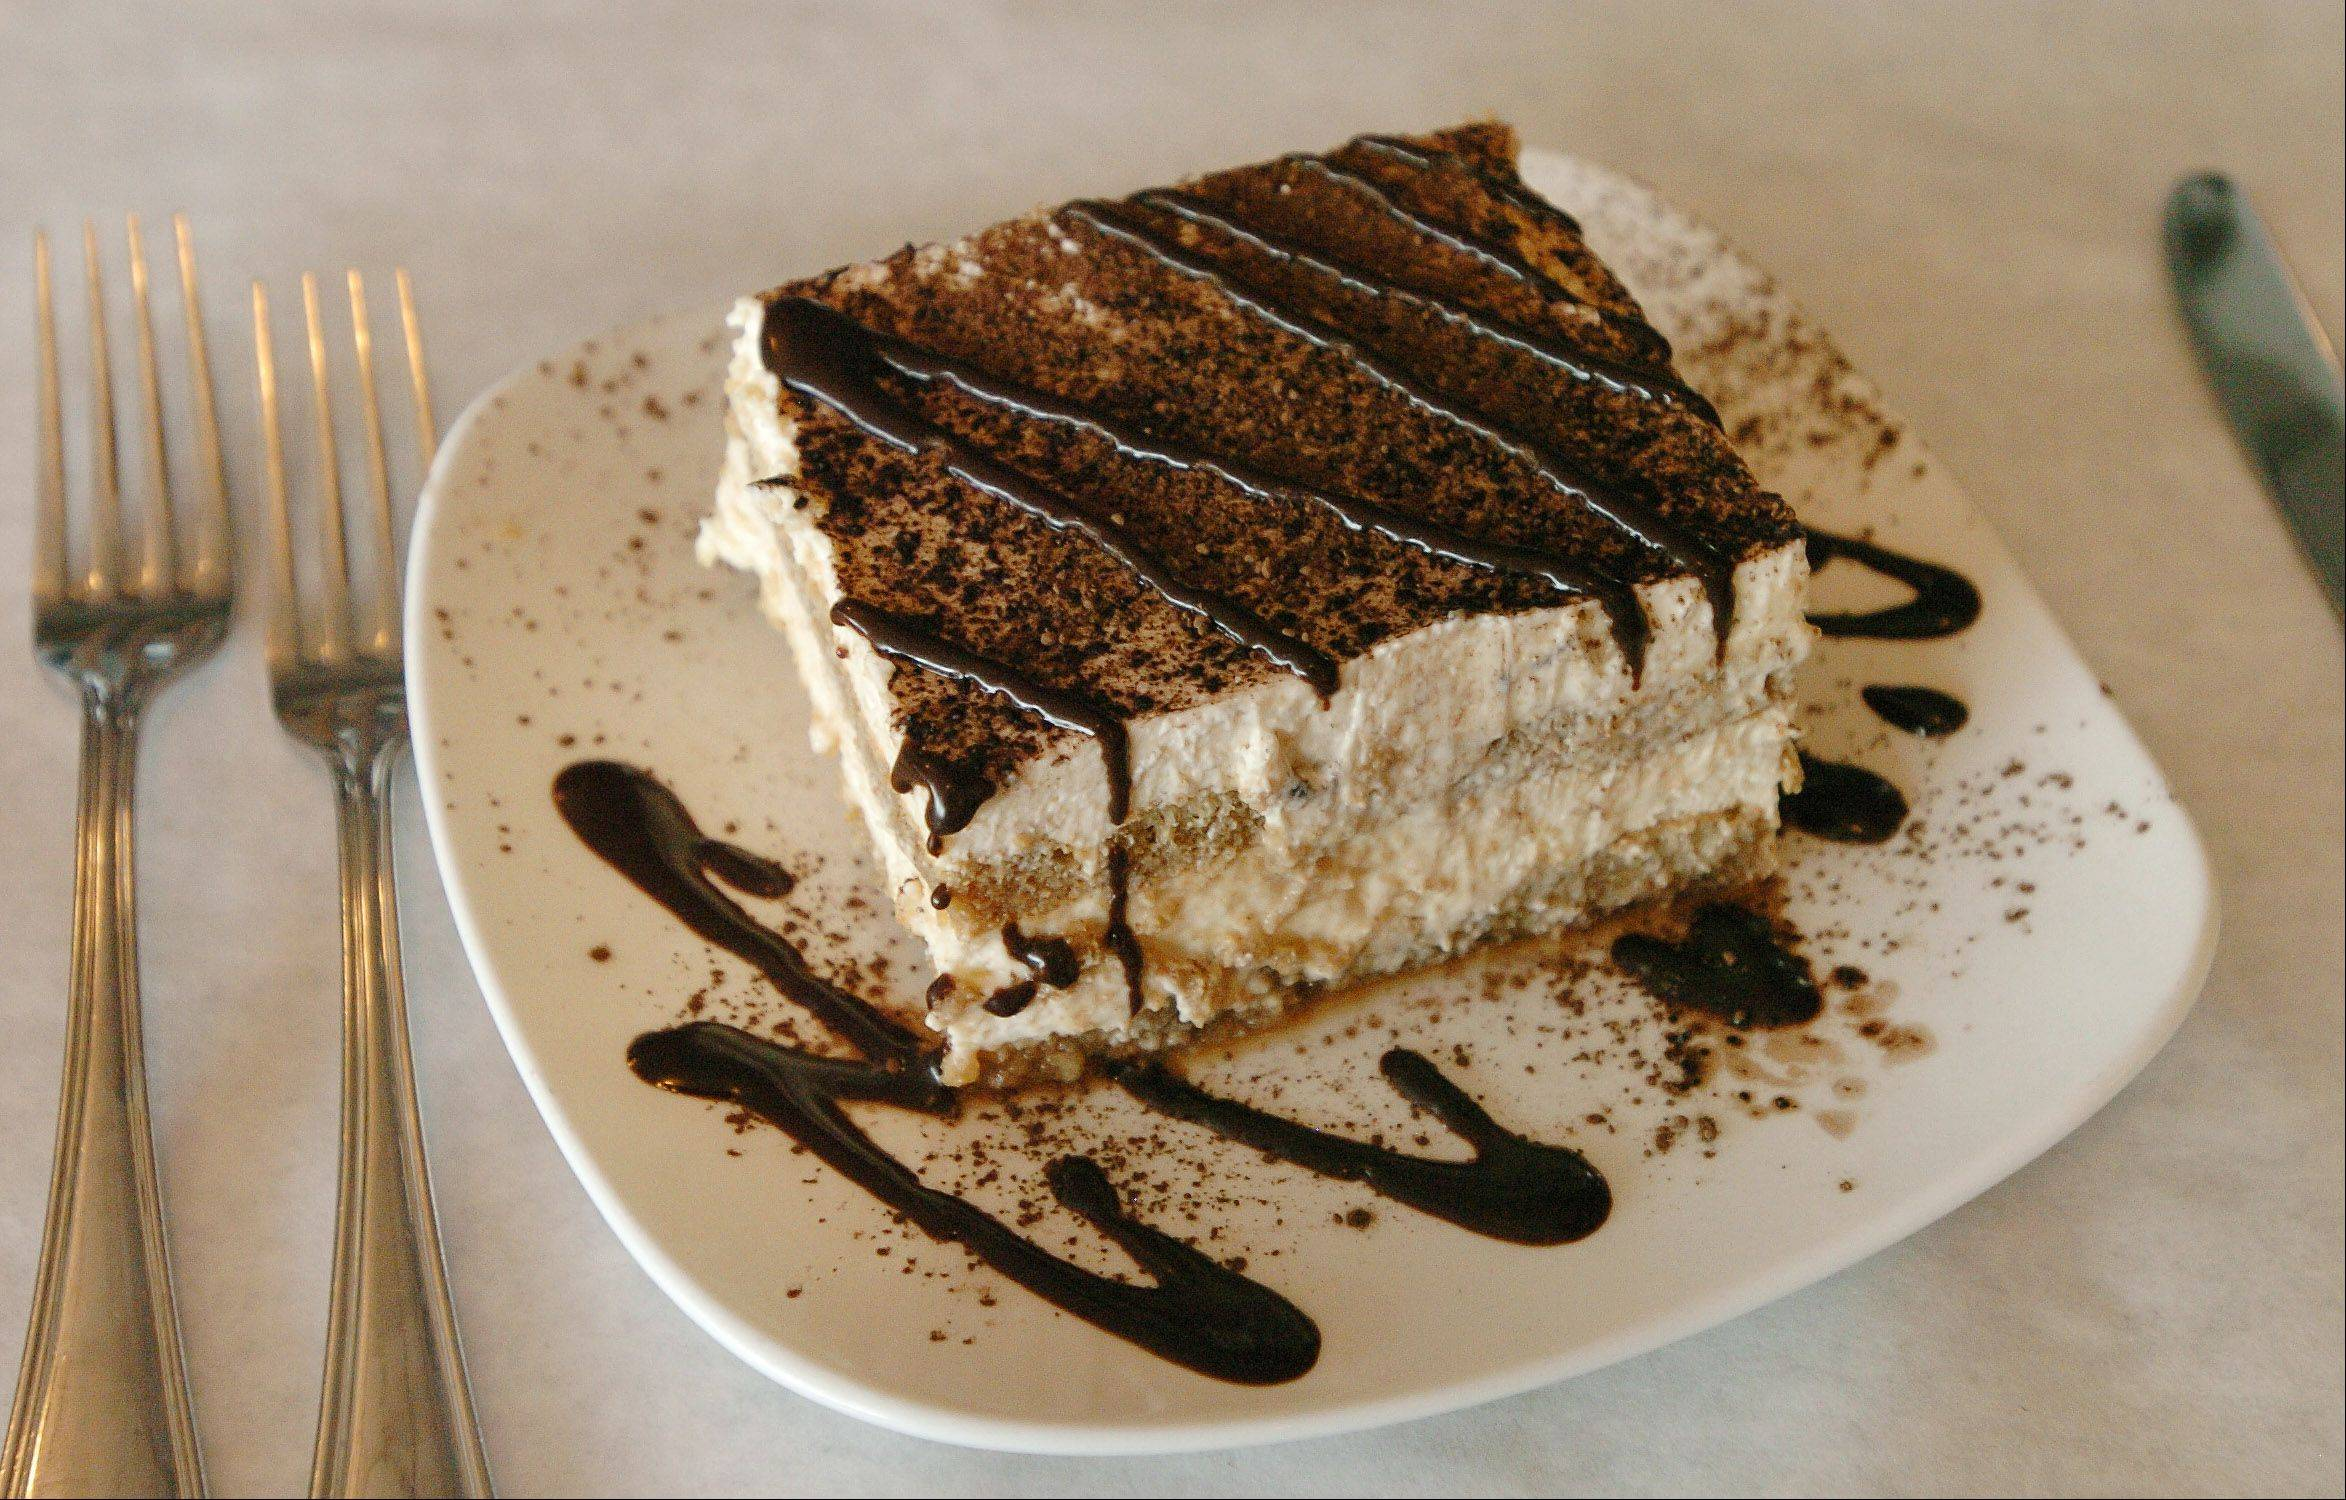 The tiramisu at DiBenedetto Trattoria in Hoffman Estates is big enough to share.